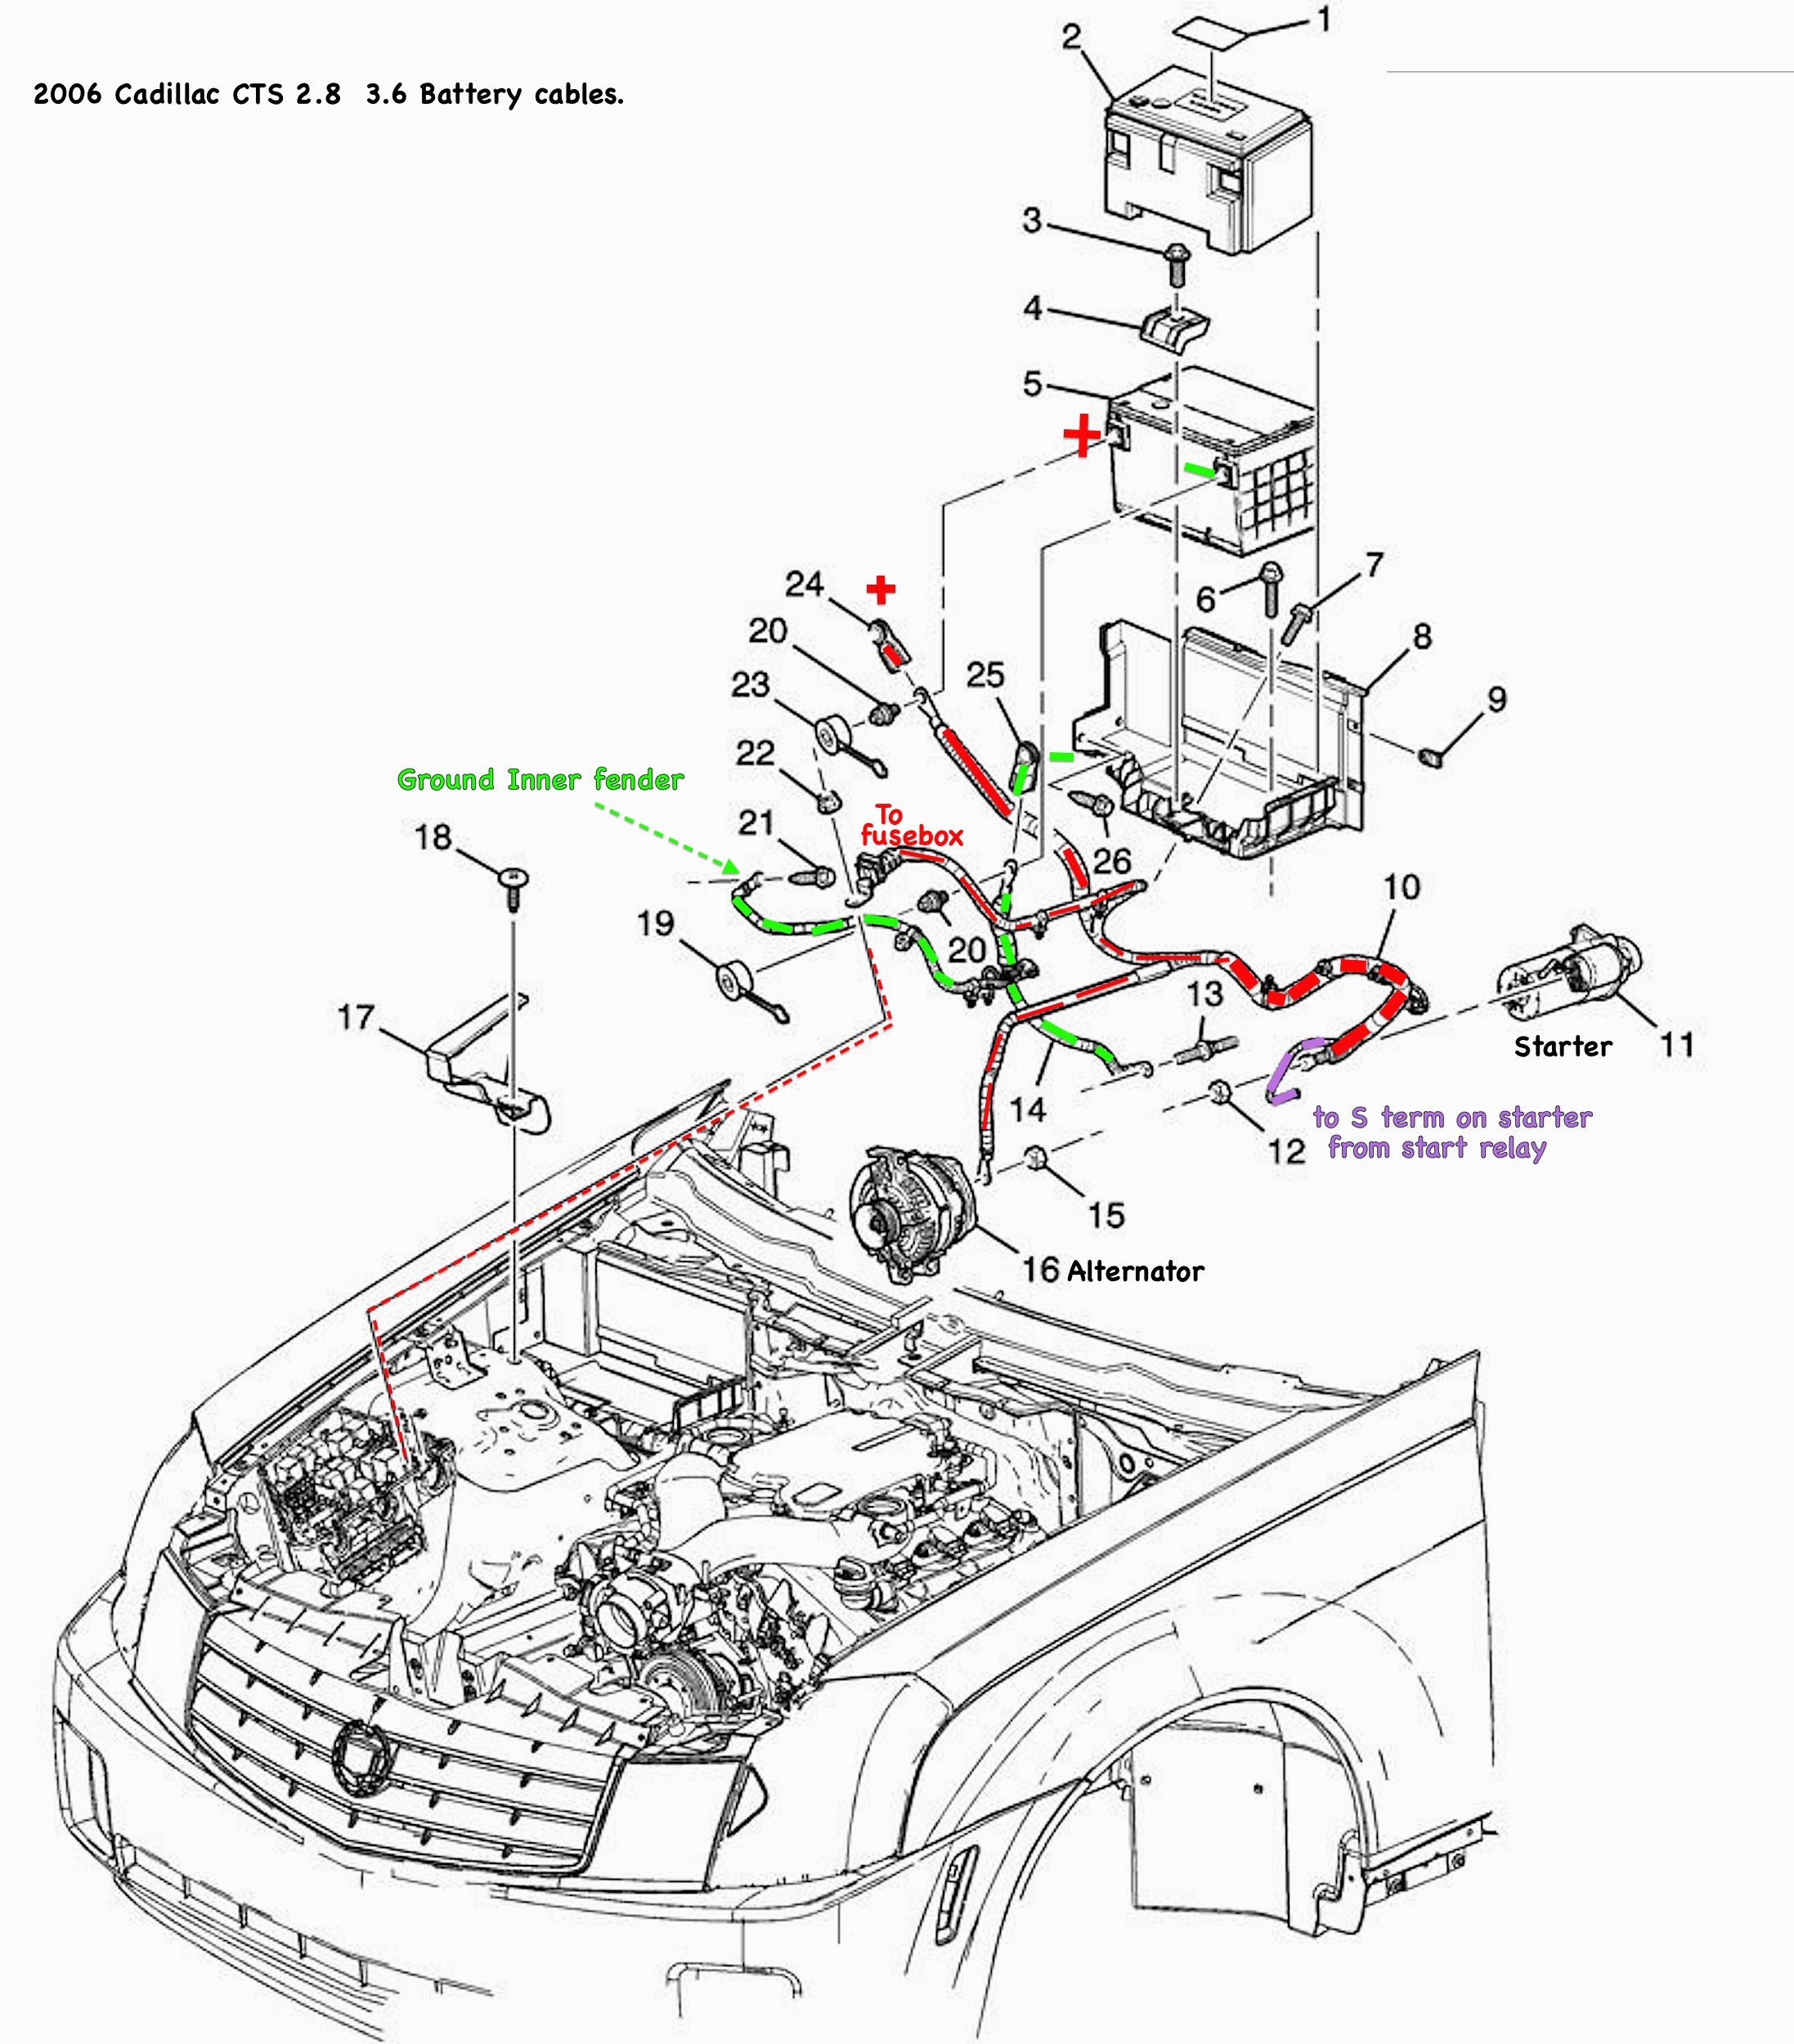 SH_5693] 2010 Buick Enclave Cylinder Diagram Download DiagramGrebs Groa Ation Syny Momece None Inki Isra Mohammedshrine Librar Wiring 101